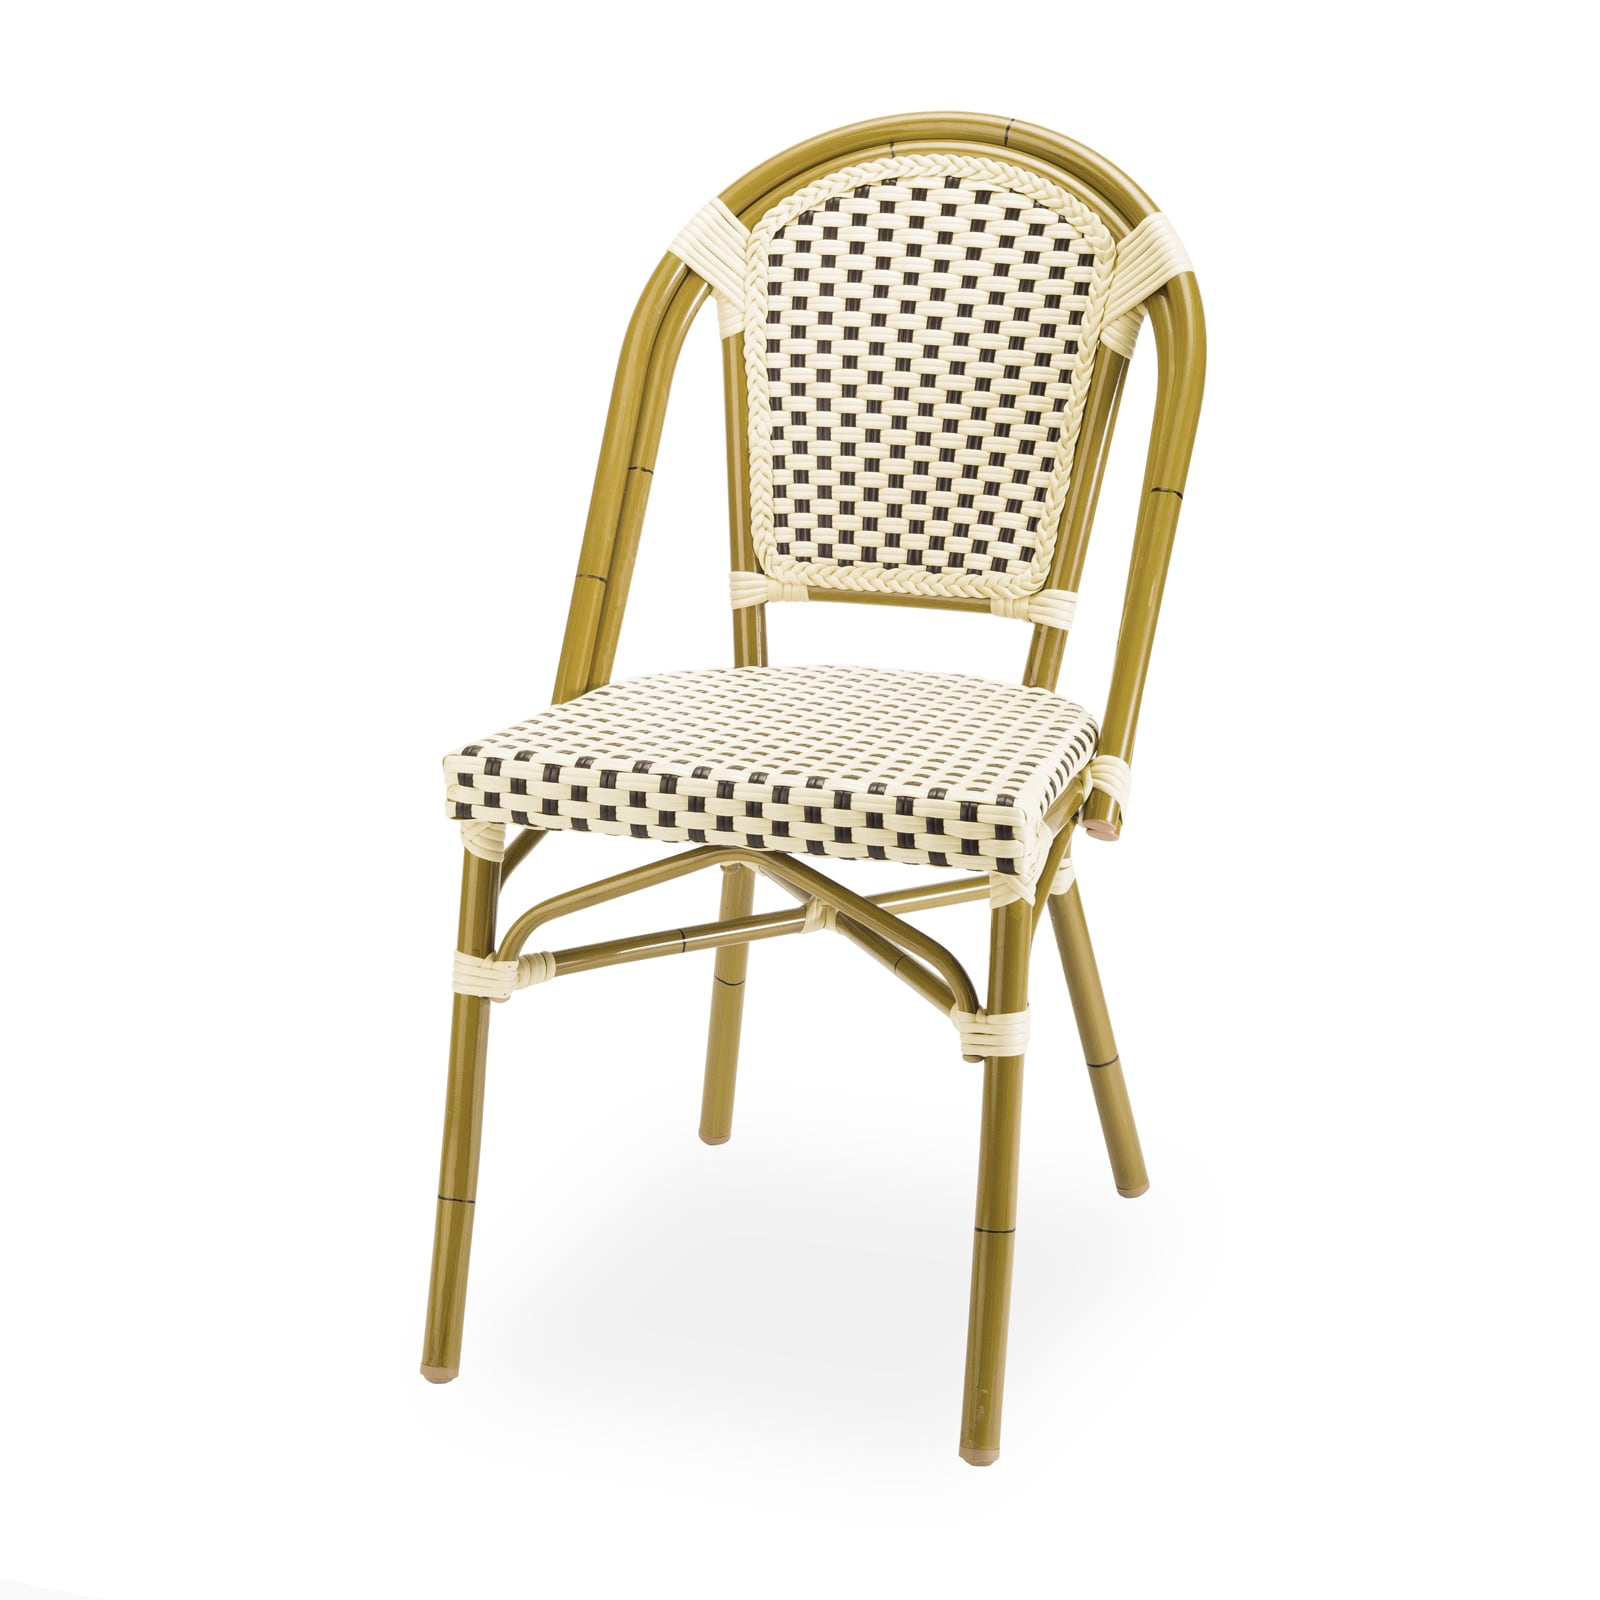 Overstock Chairs Paris Side Chair 15287003 Overstock Shopping Big